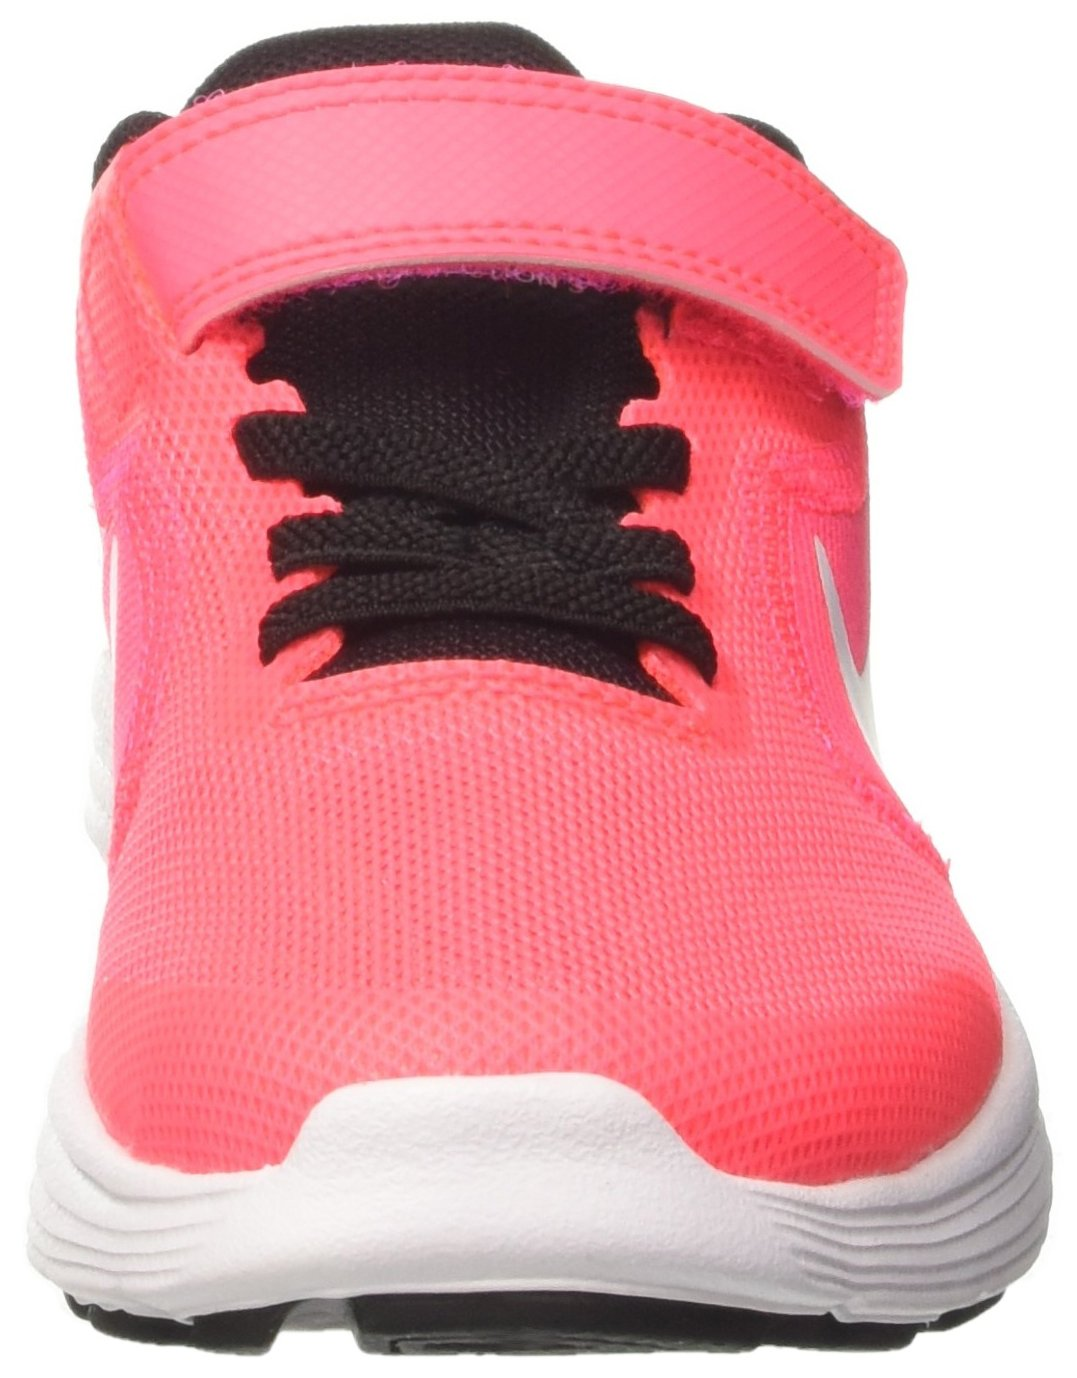 NIKE Kids' Revolution 3 (Psv) Running-Shoes, Black/White/Racer Pink/Black, 1 M US Little Kid by Nike (Image #4)